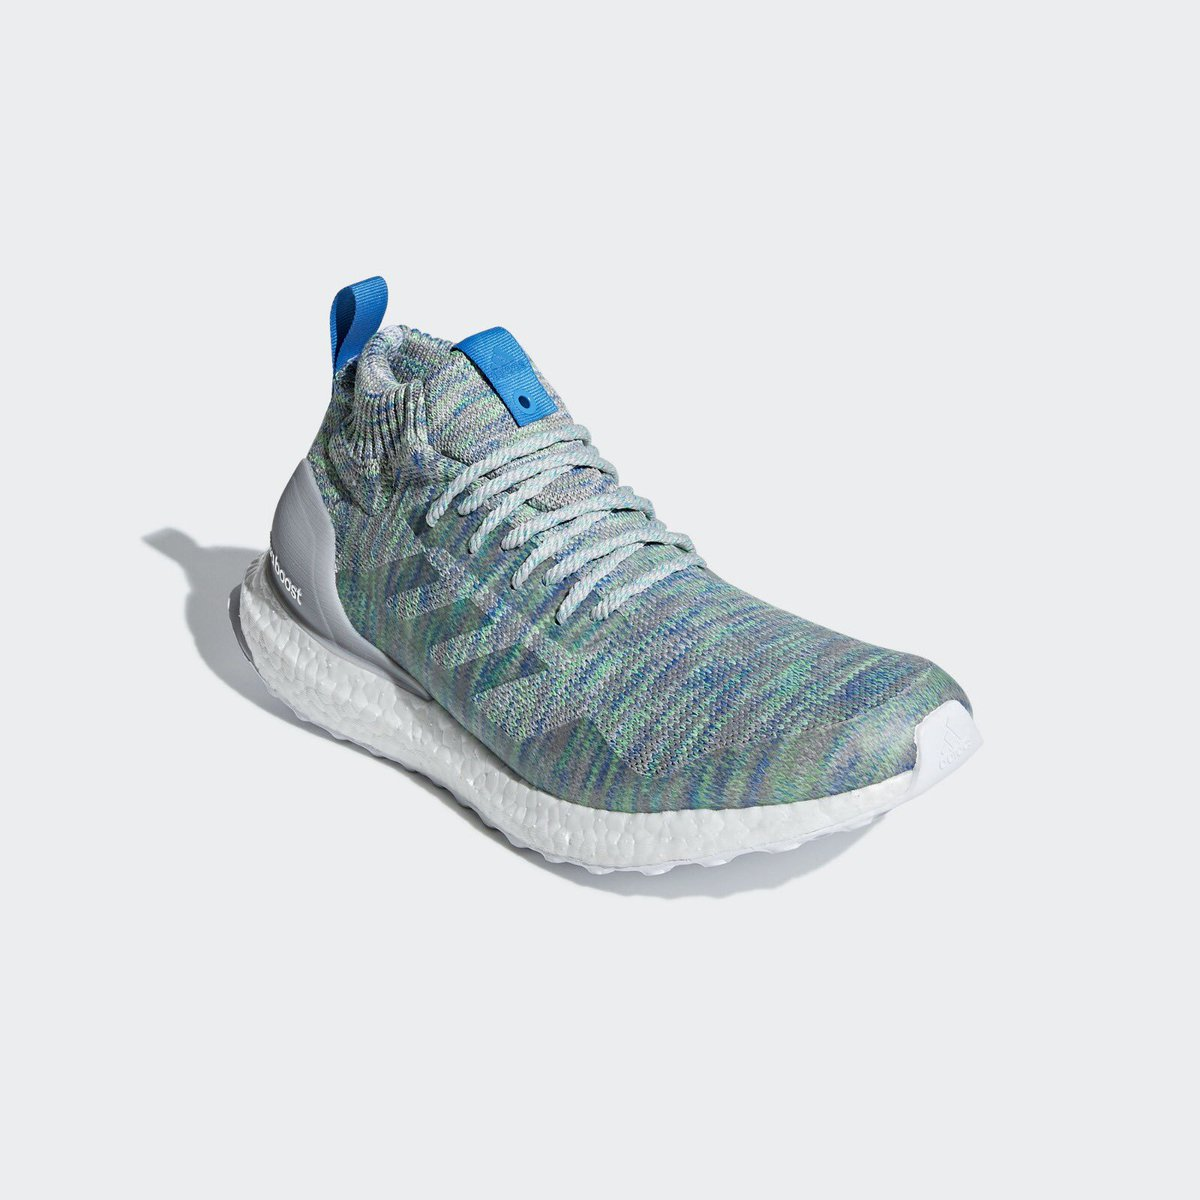 c33a9399d81 ... ireland justfreshkicks on twitter official look at the adidas ultra  boost mid grey multicolor releasing september